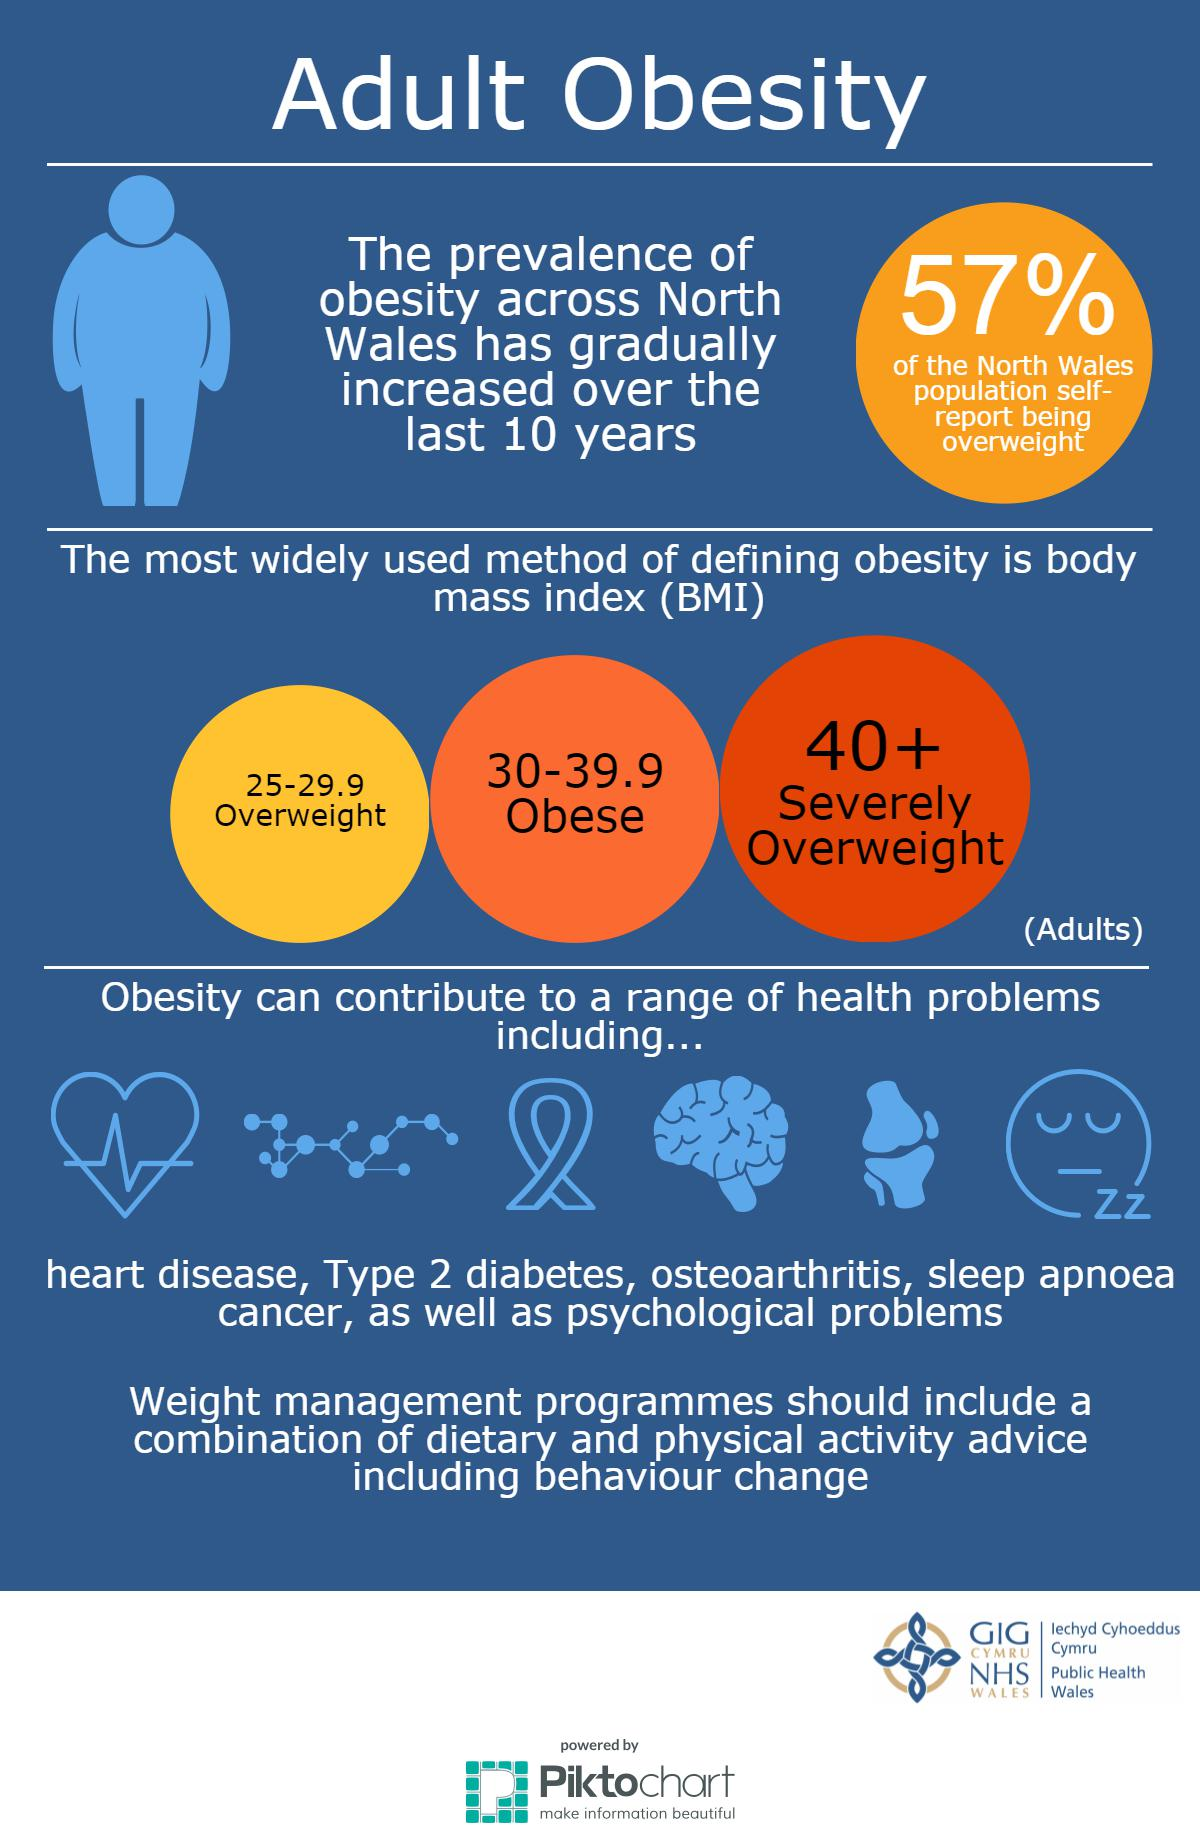 What are the consequences of obesity?